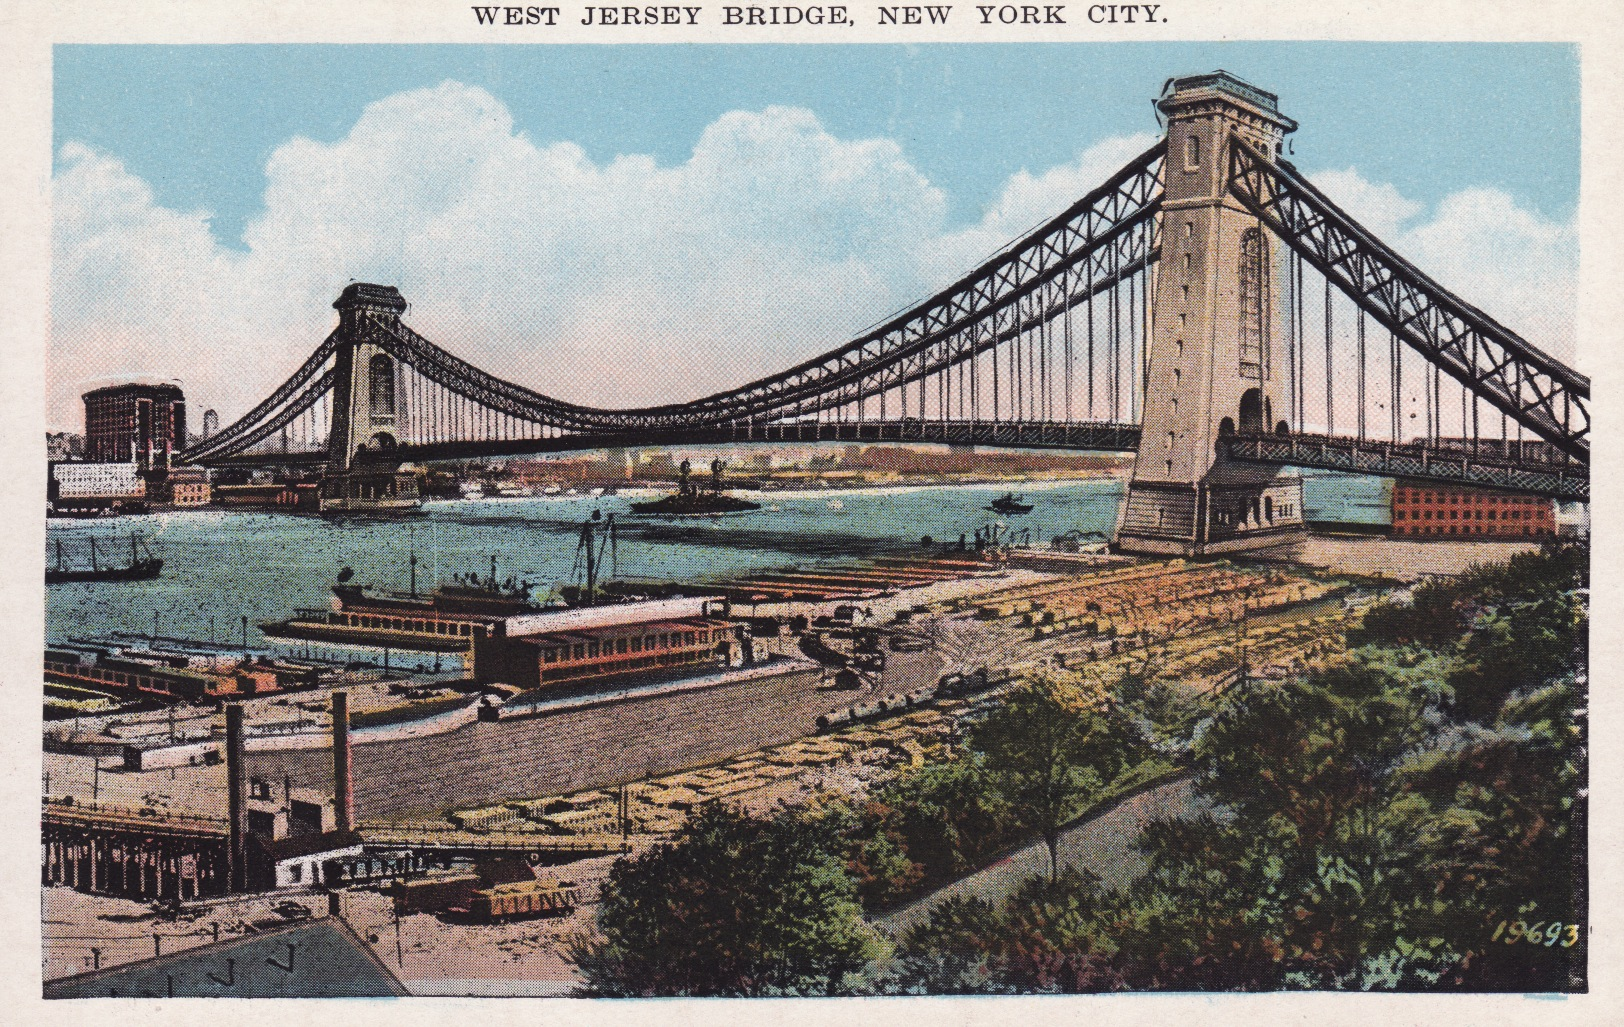 Old New York in Postcards #11 – Unbuilt New York